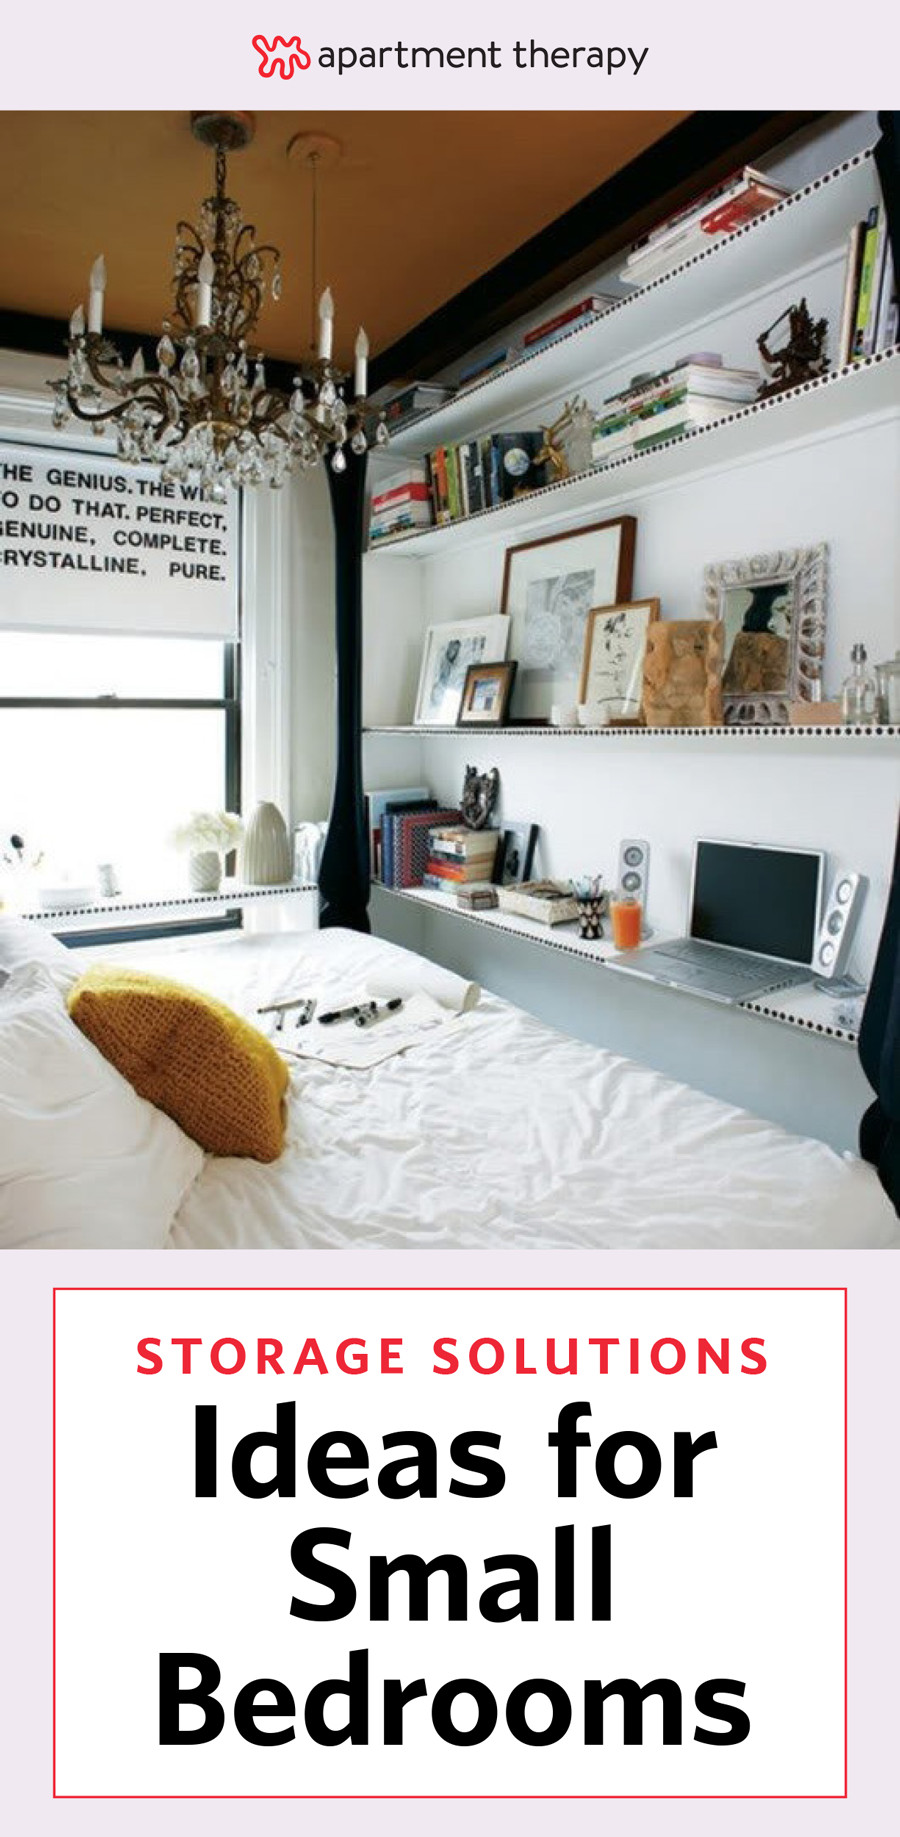 Space Saving Bedroom Ideas Lovely 8 Storage solutions to Maximize Your Hidden Bedroom Space